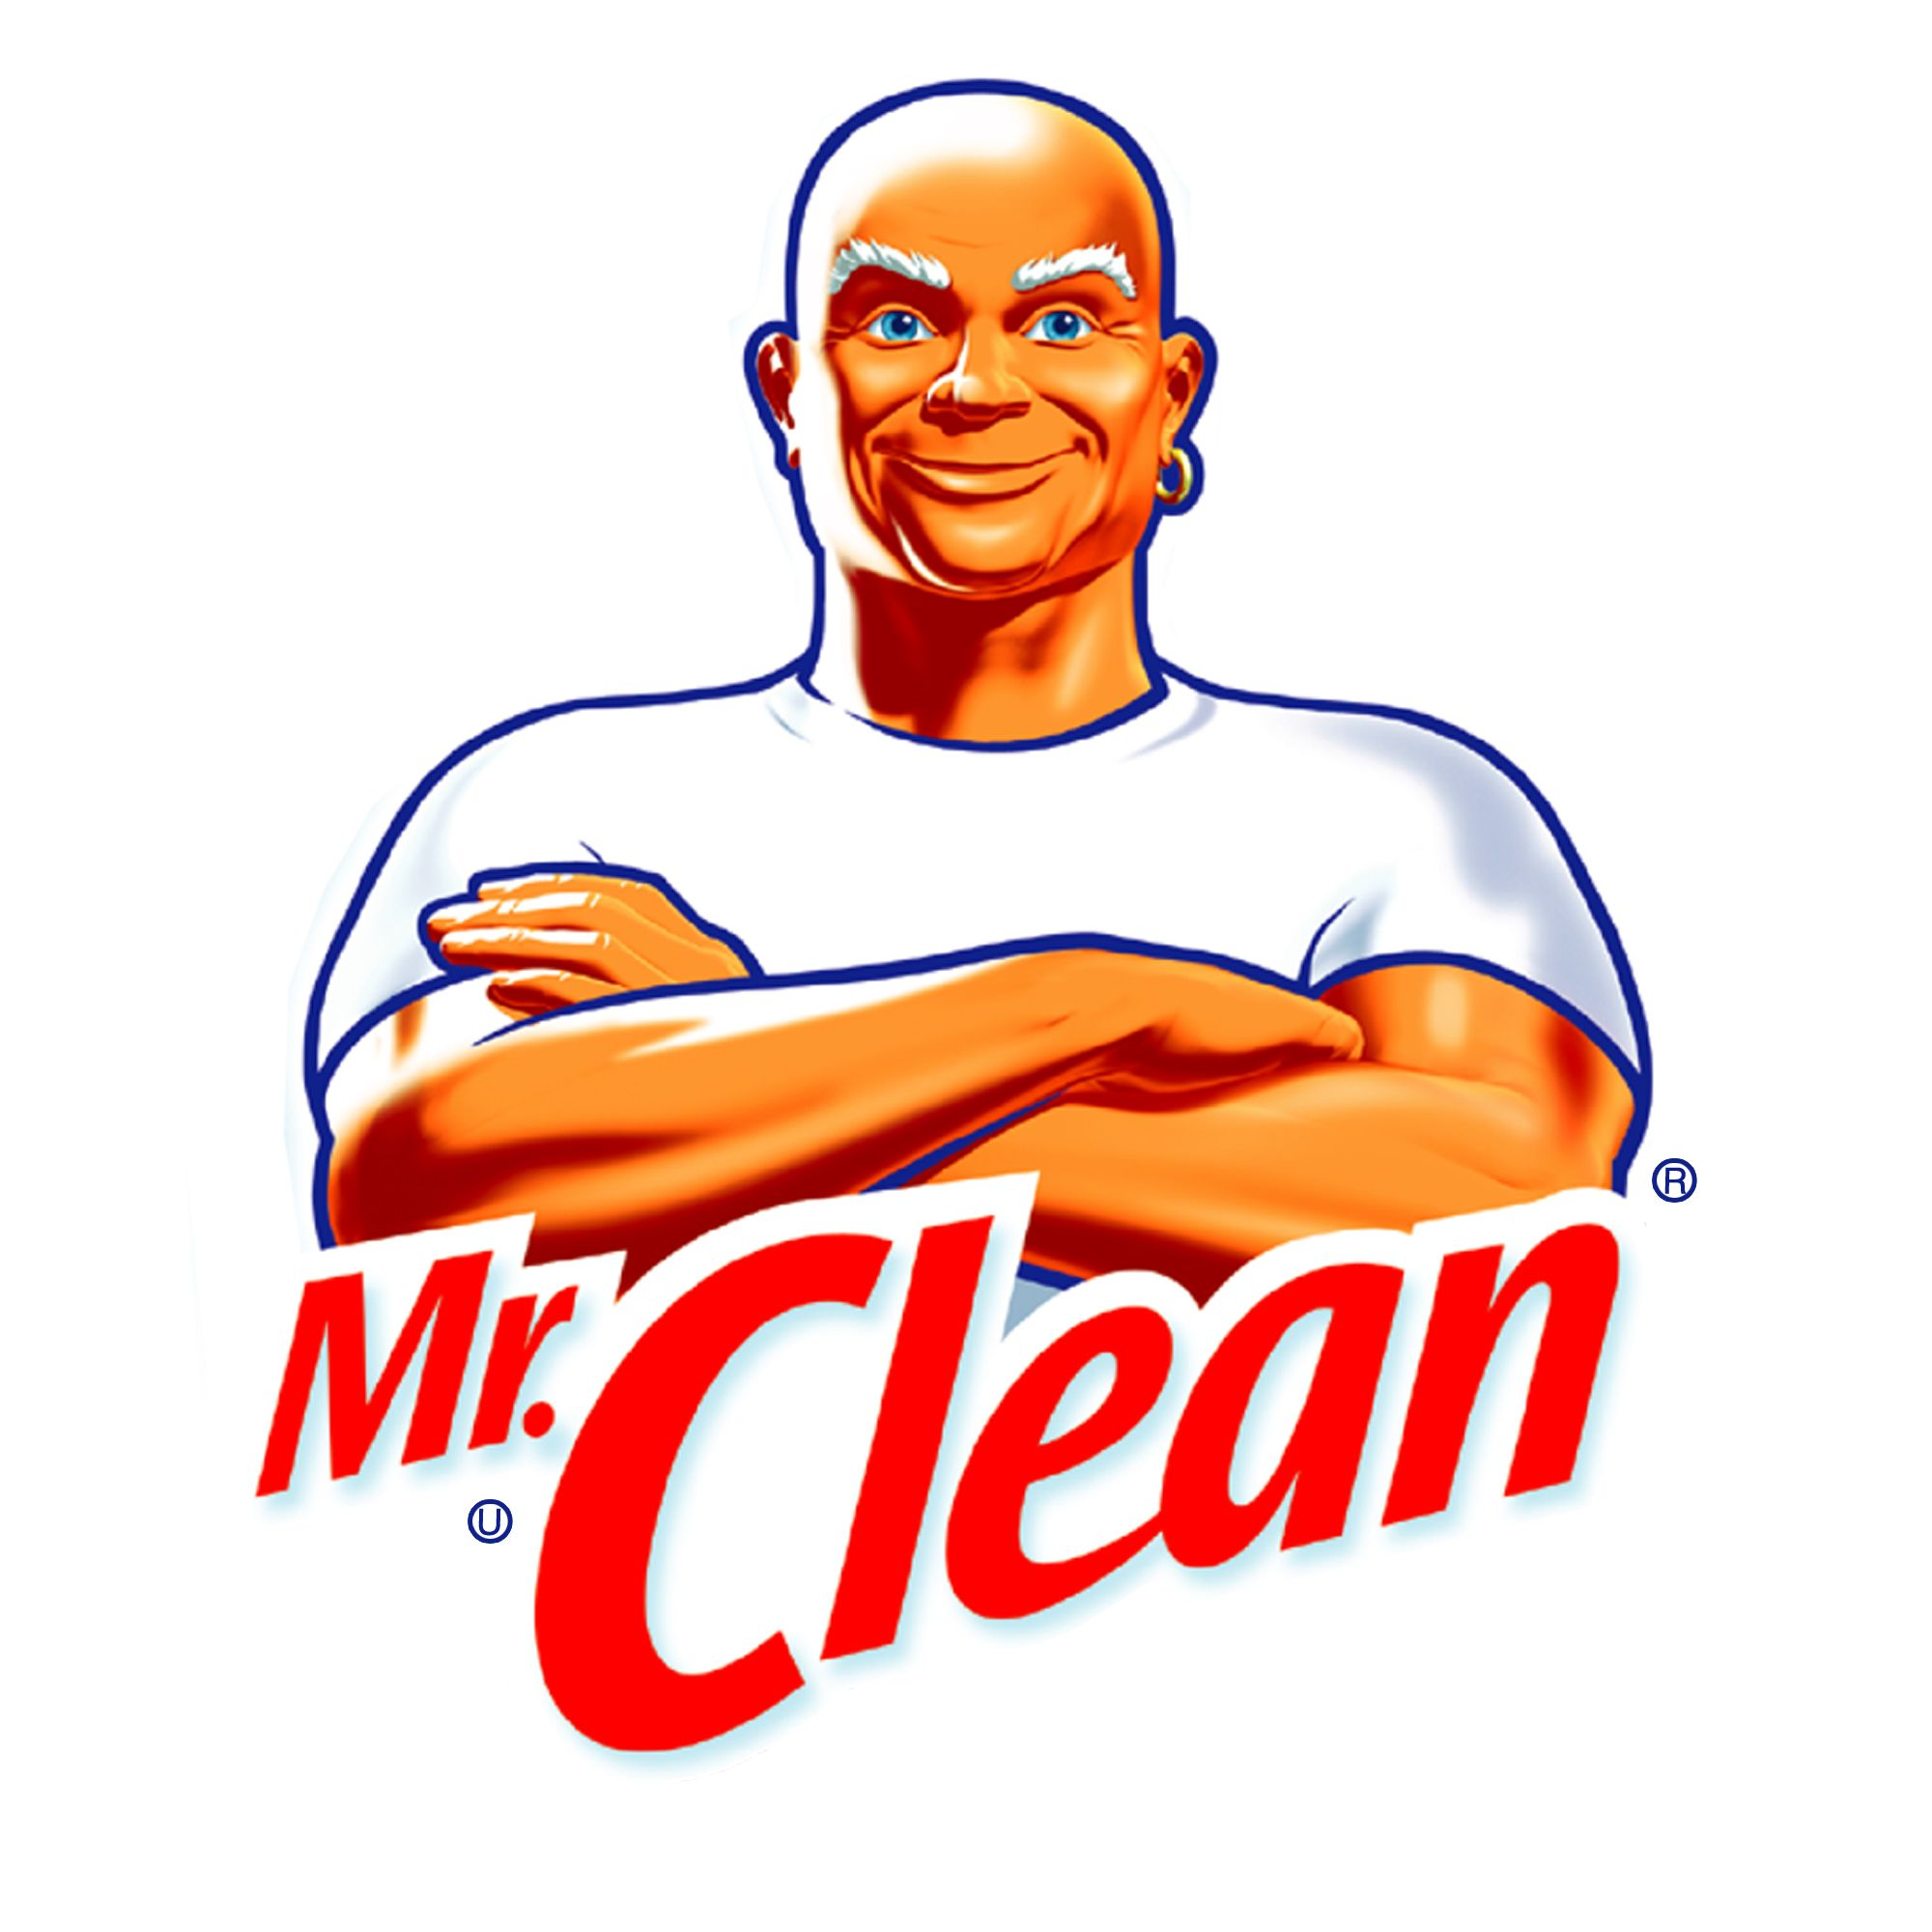 Guy Cleaning Kitchen: Mr Clean, Cleaning And Logos